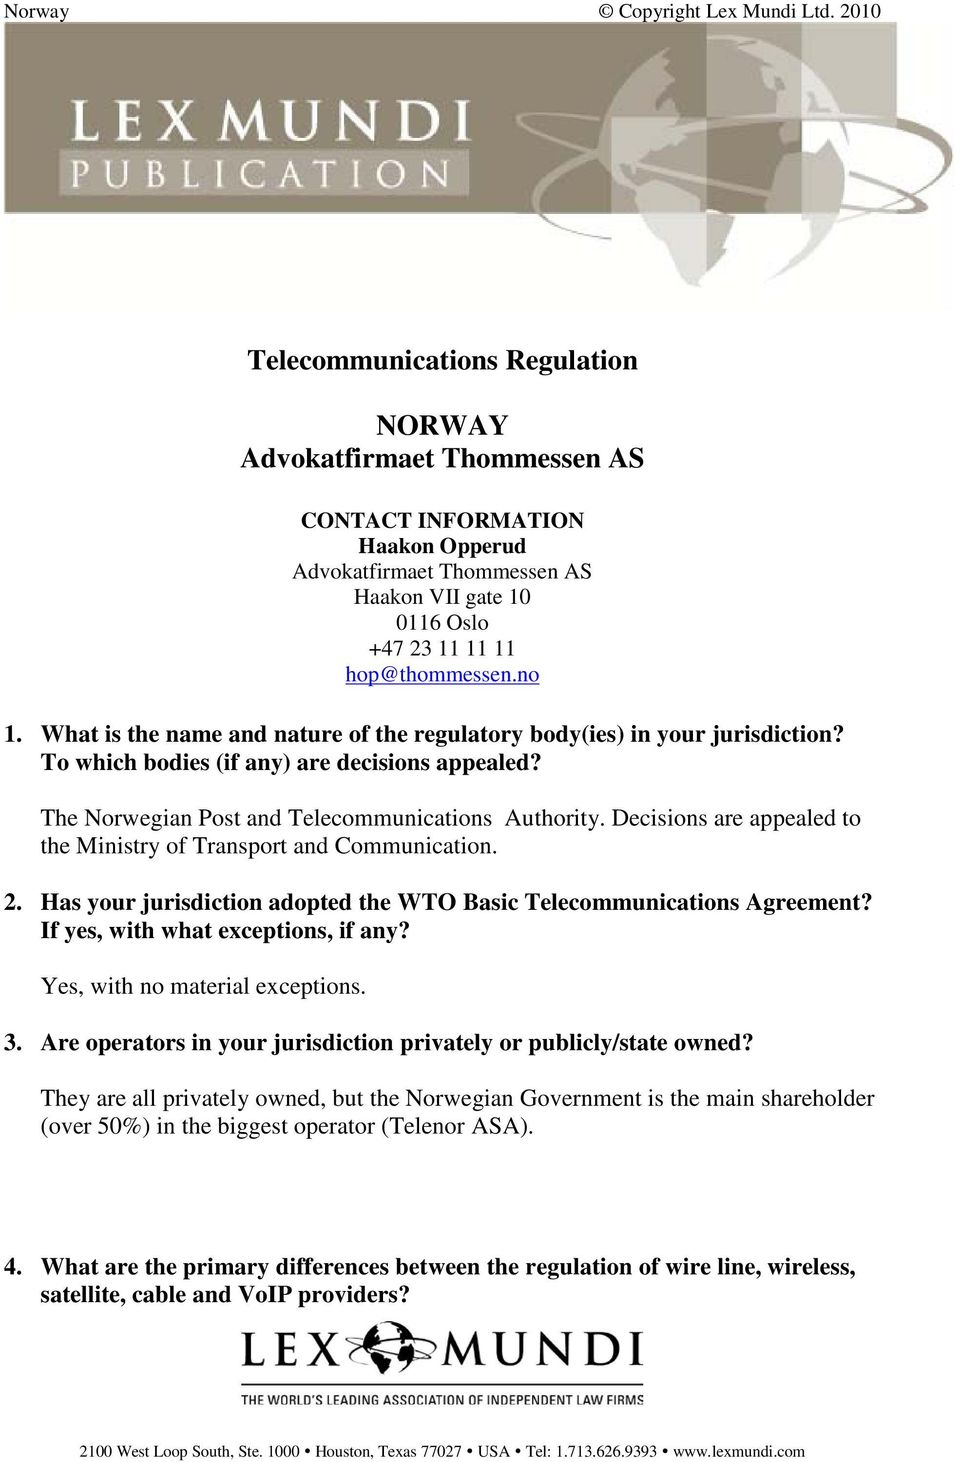 Decisions are appealed to the Ministry of Transport and Communication. 2. Has your jurisdiction adopted the WTO Basic Telecommunications Agreement? If yes, with what exceptions, if any?